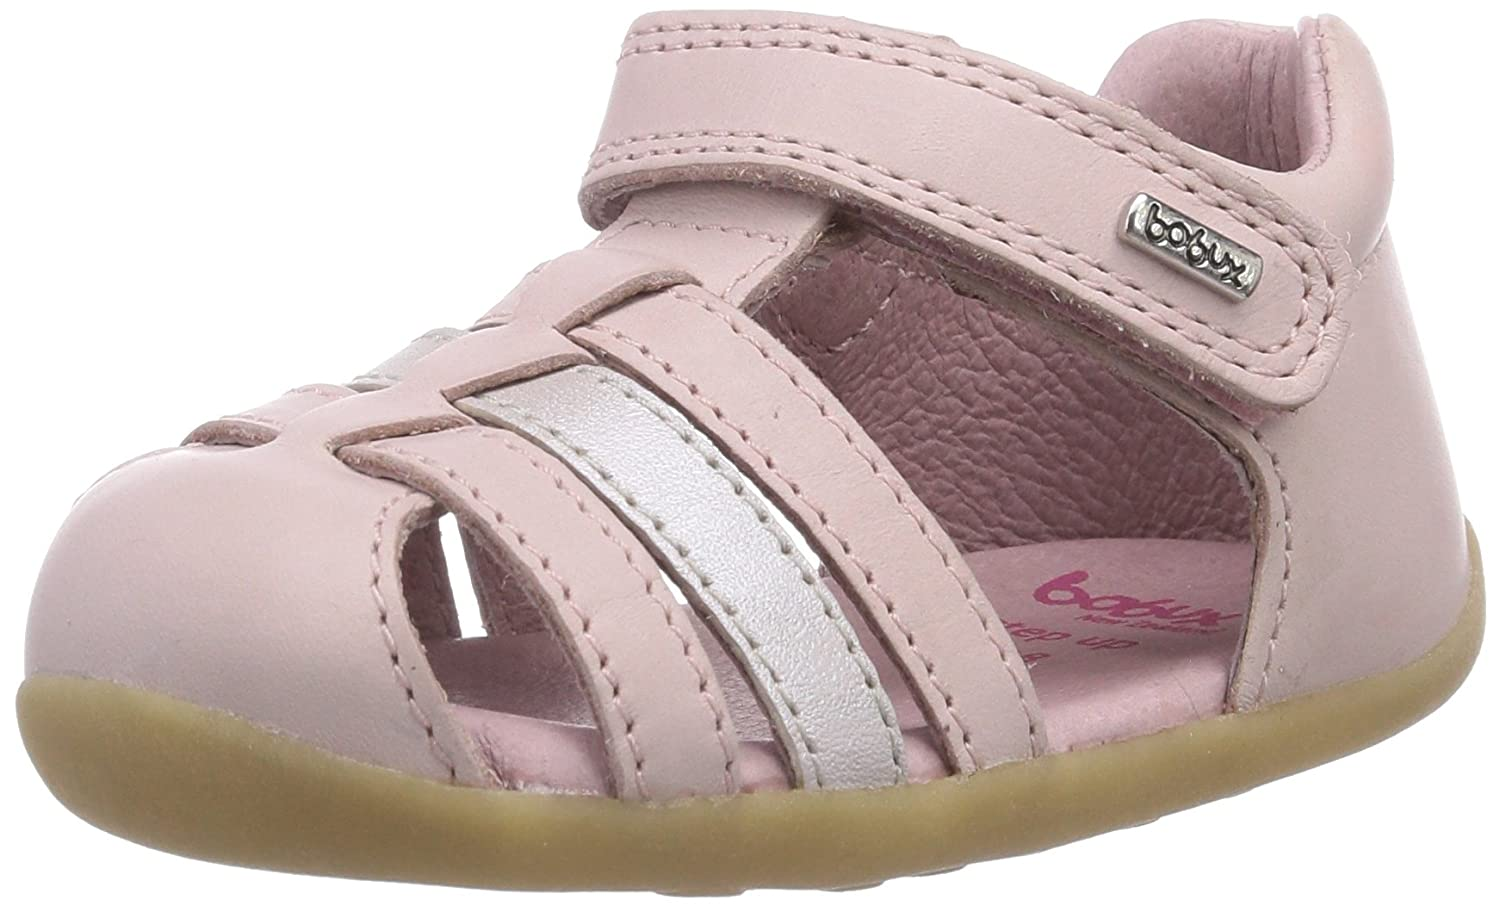 Bobux Kids Baby Girl's Sherbert (Infant/Toddler)